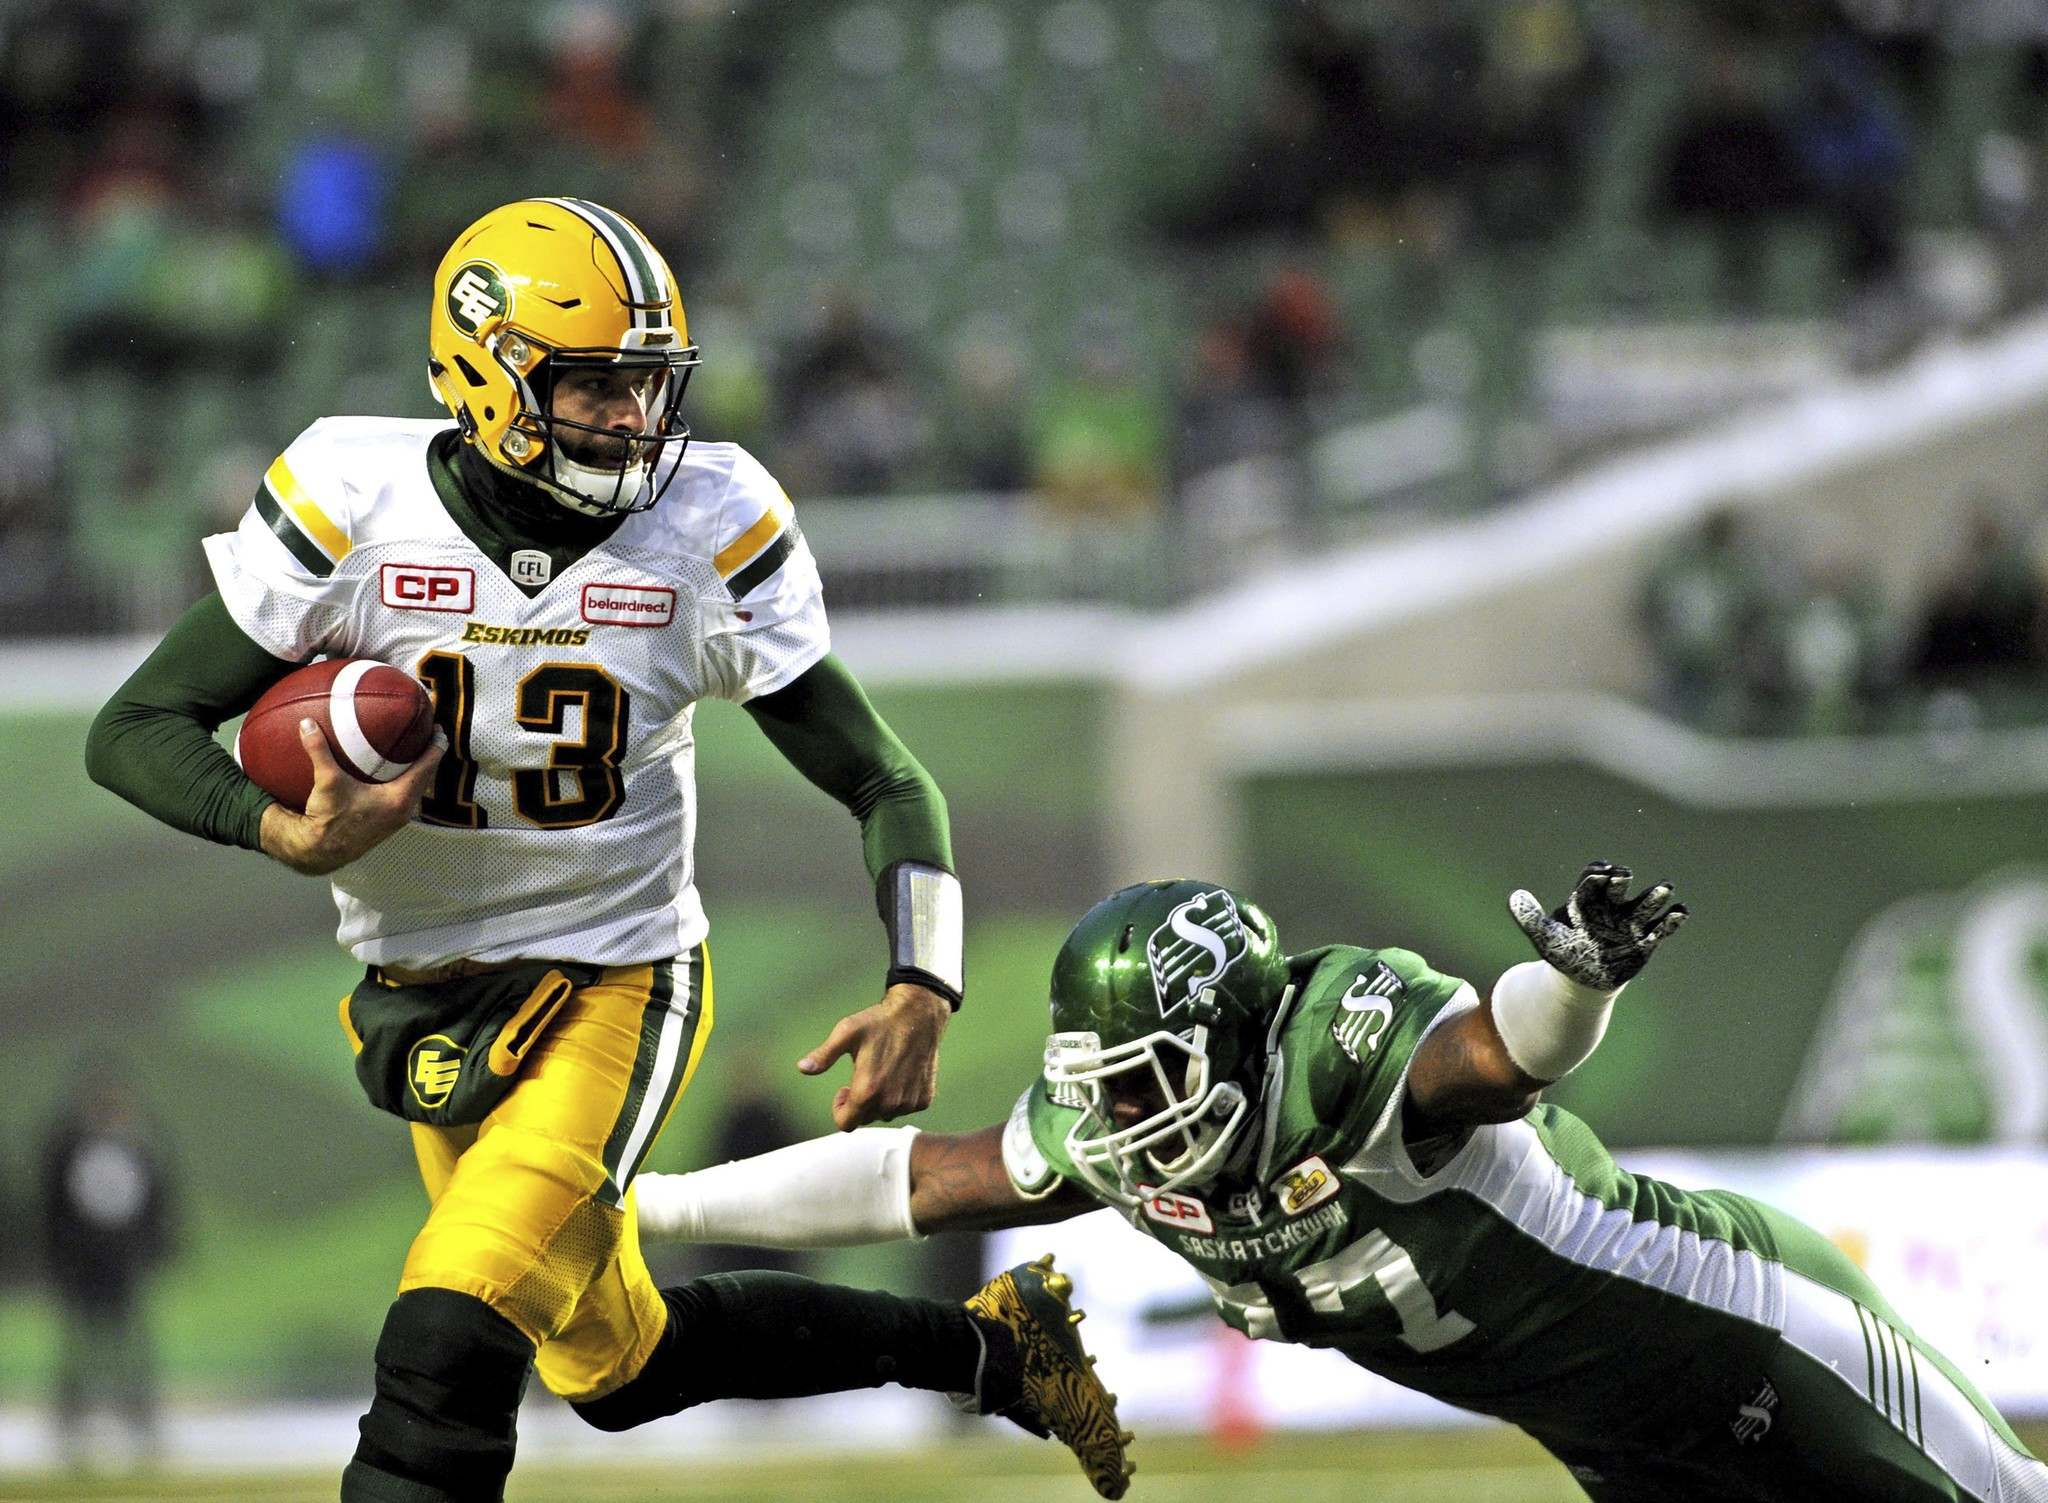 <p>Edmonton Eskimos quarterback Mike Reilly led the CFL in passing yards, passing touchdowns and rushing touchdowns this season.</p></p>